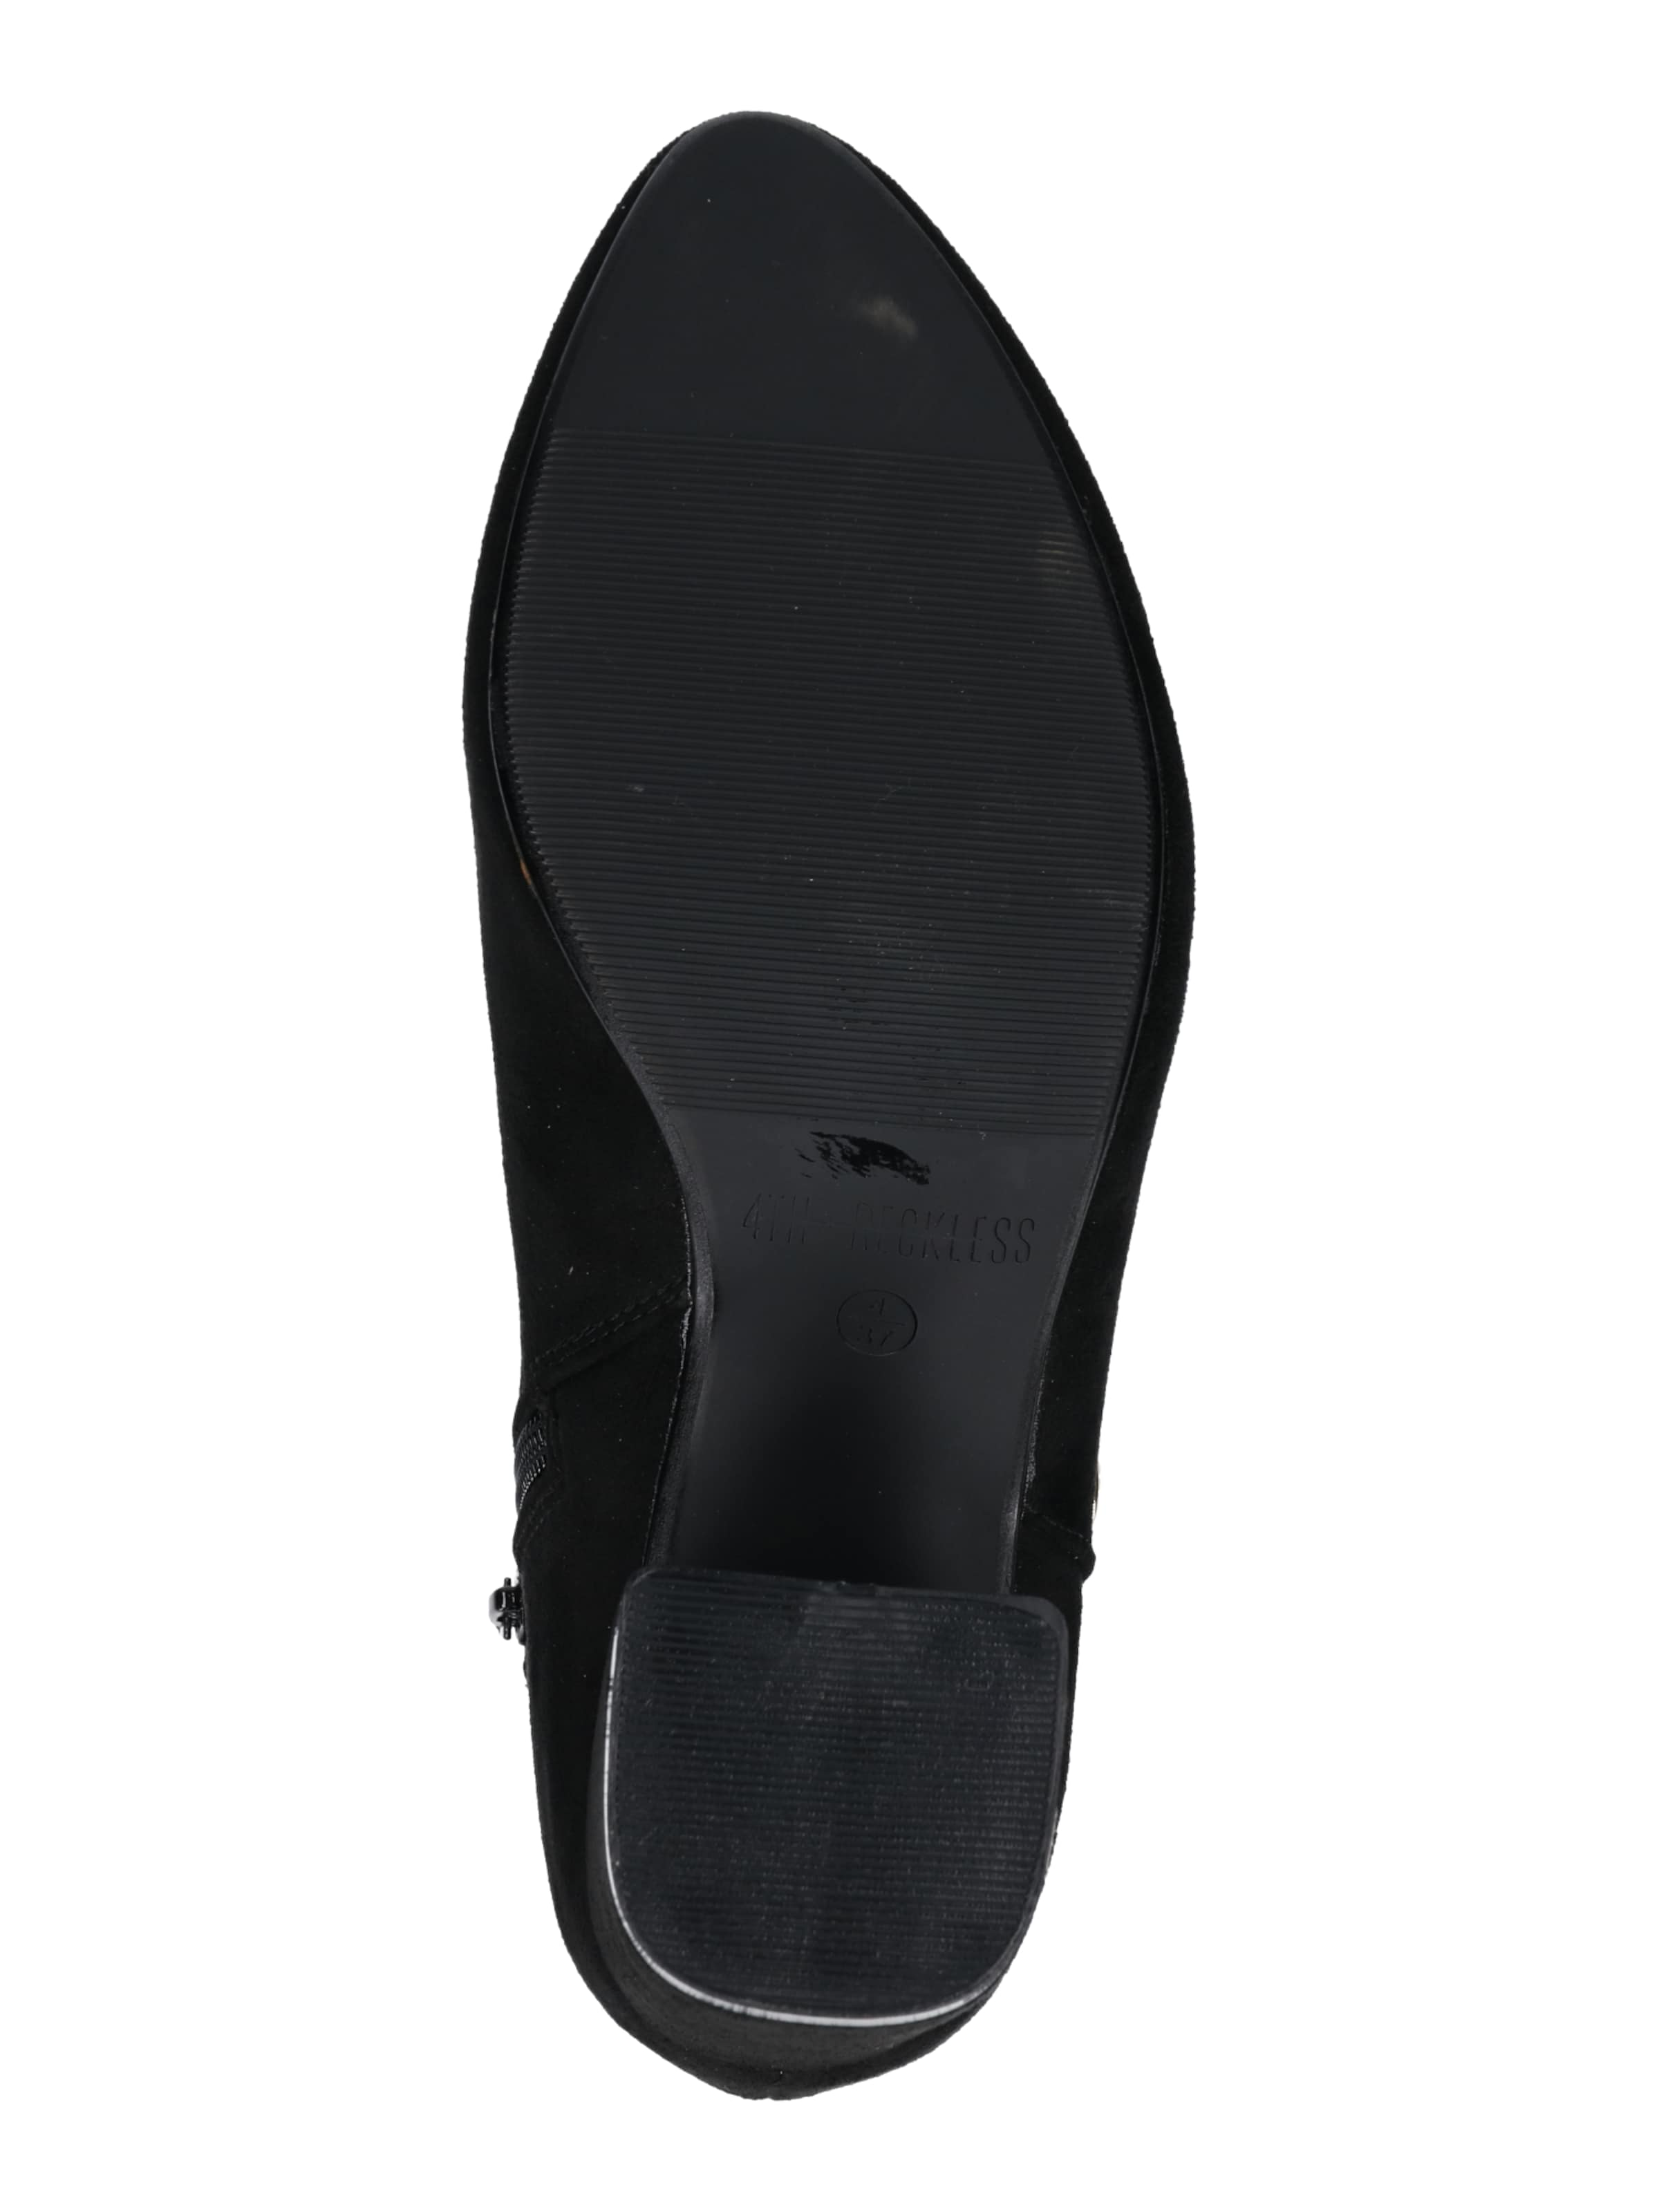 4thamp; 4thamp; 'leary' 'leary' In RecklessBottines RecklessBottines In Noir rsCxhQdt